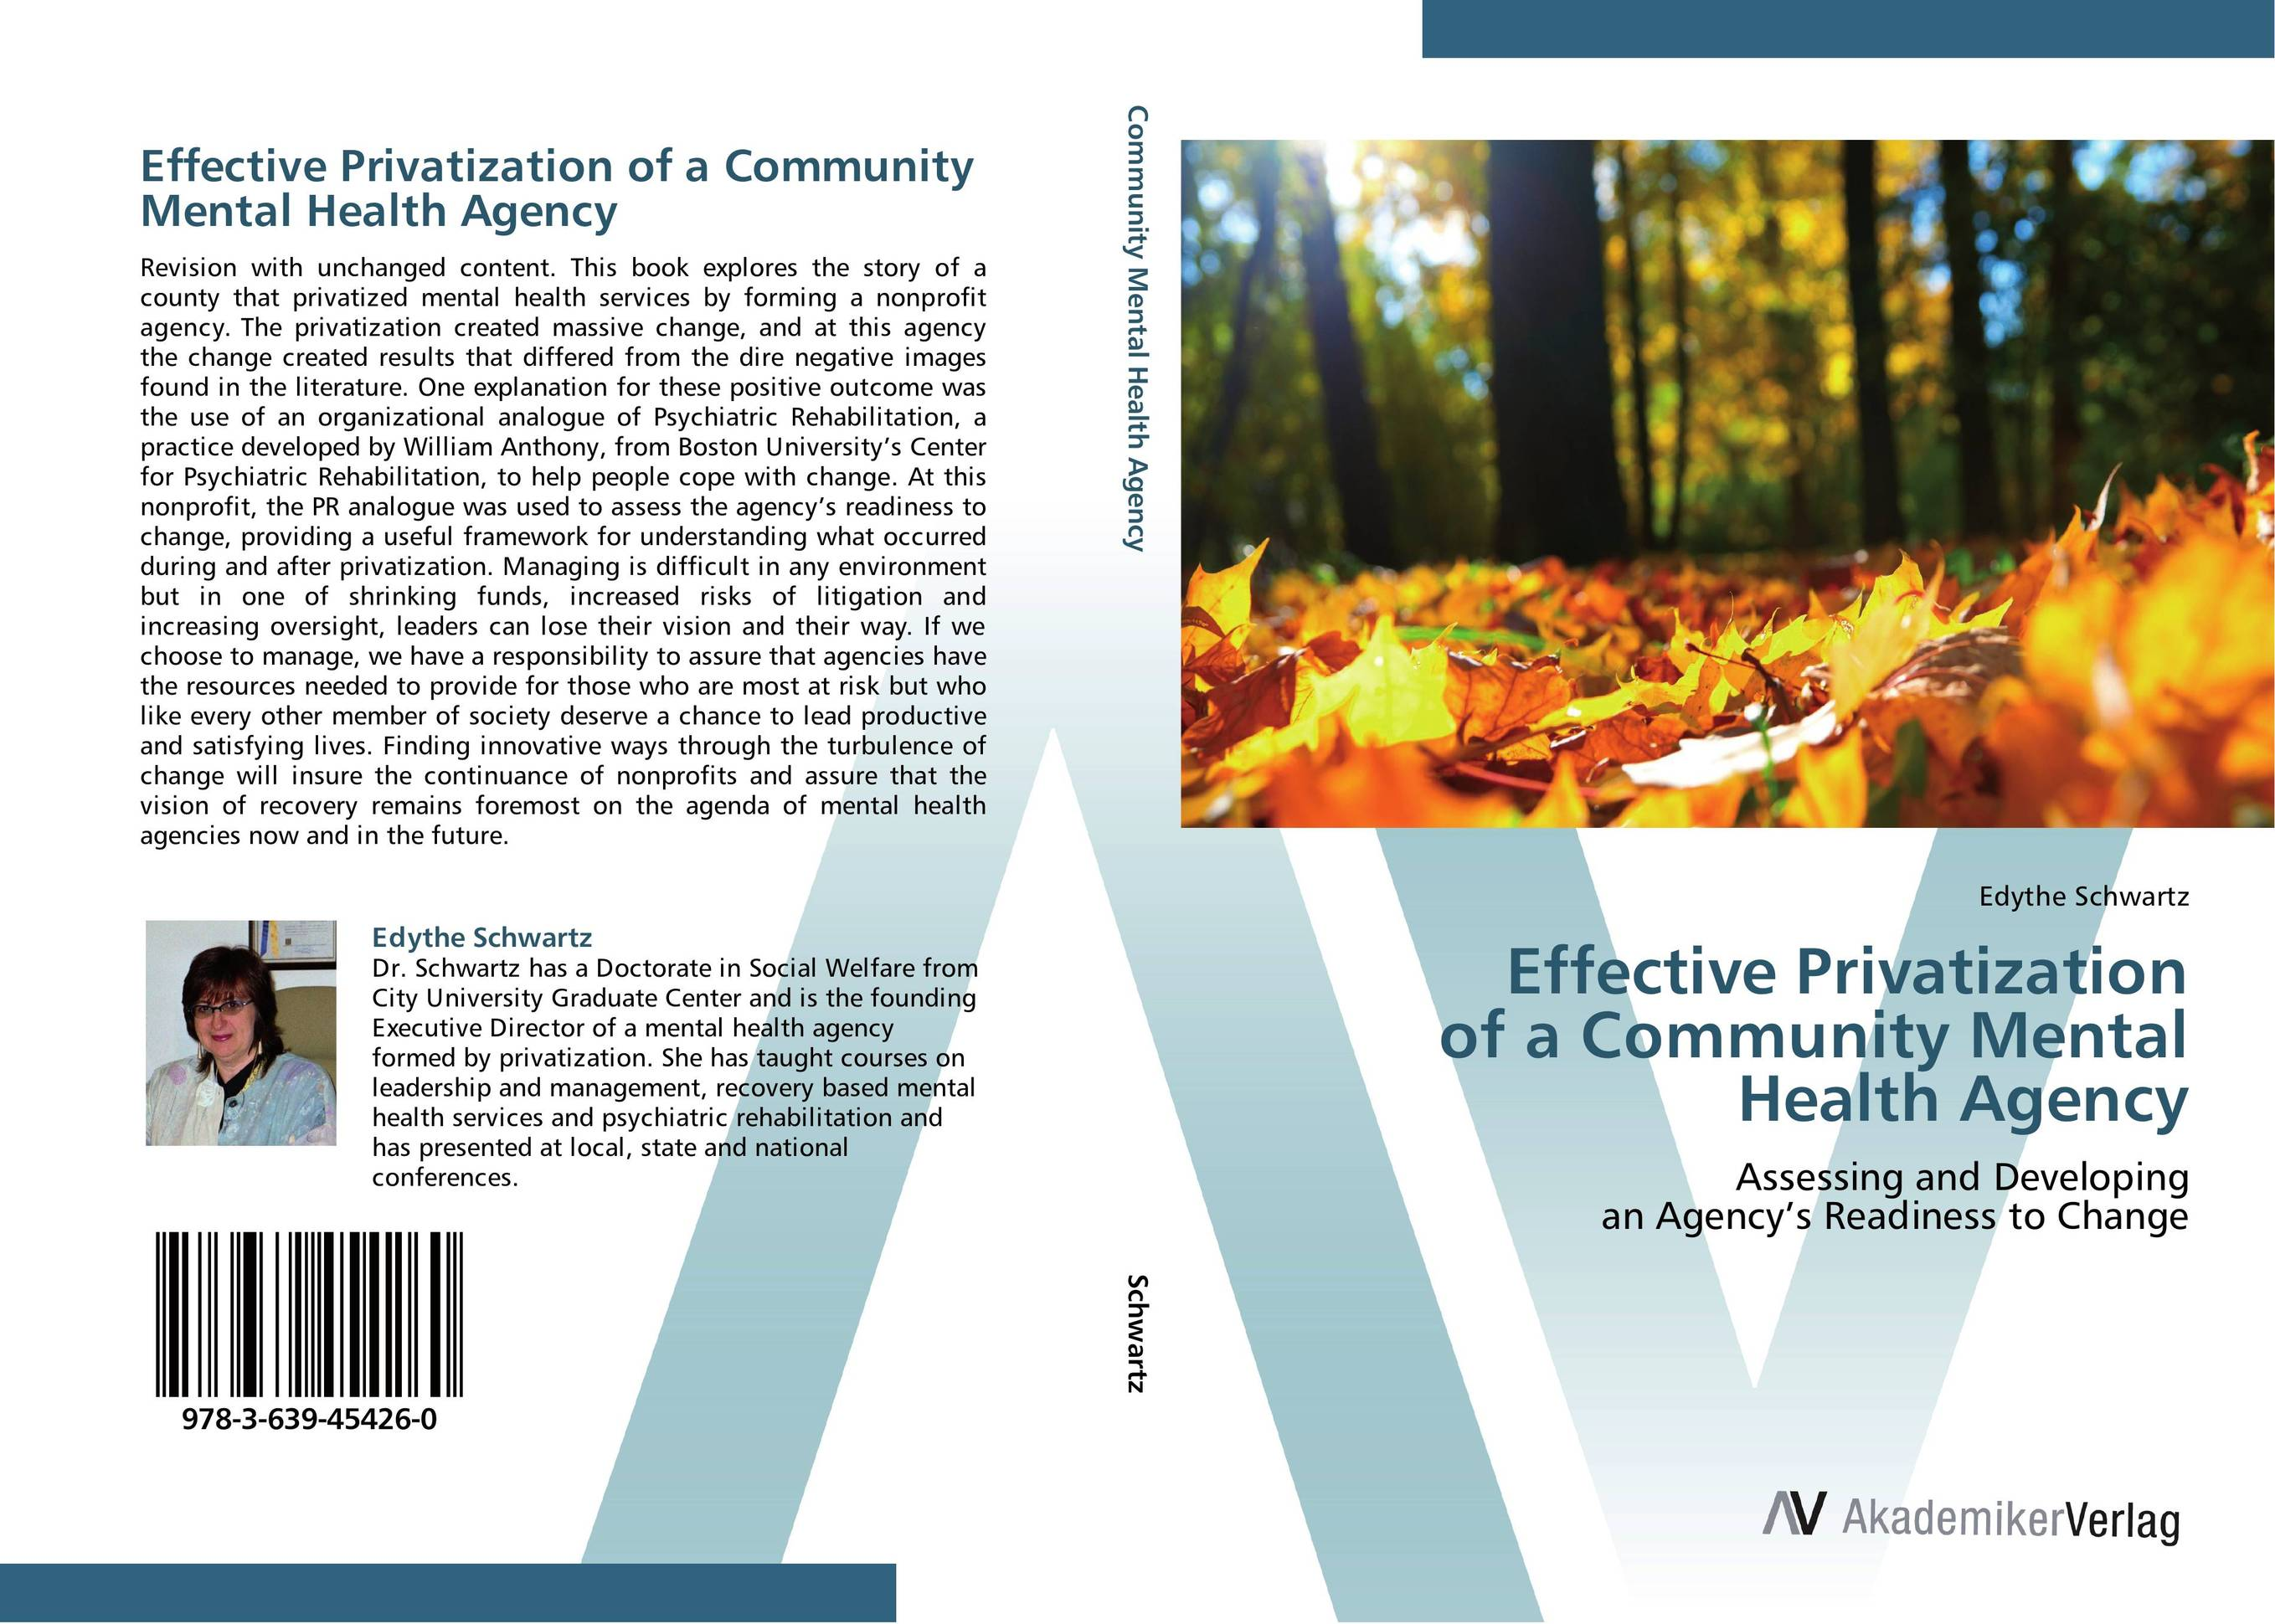 Effective Privatization of a Community Mental Health Agency psychiatric rehabilitation